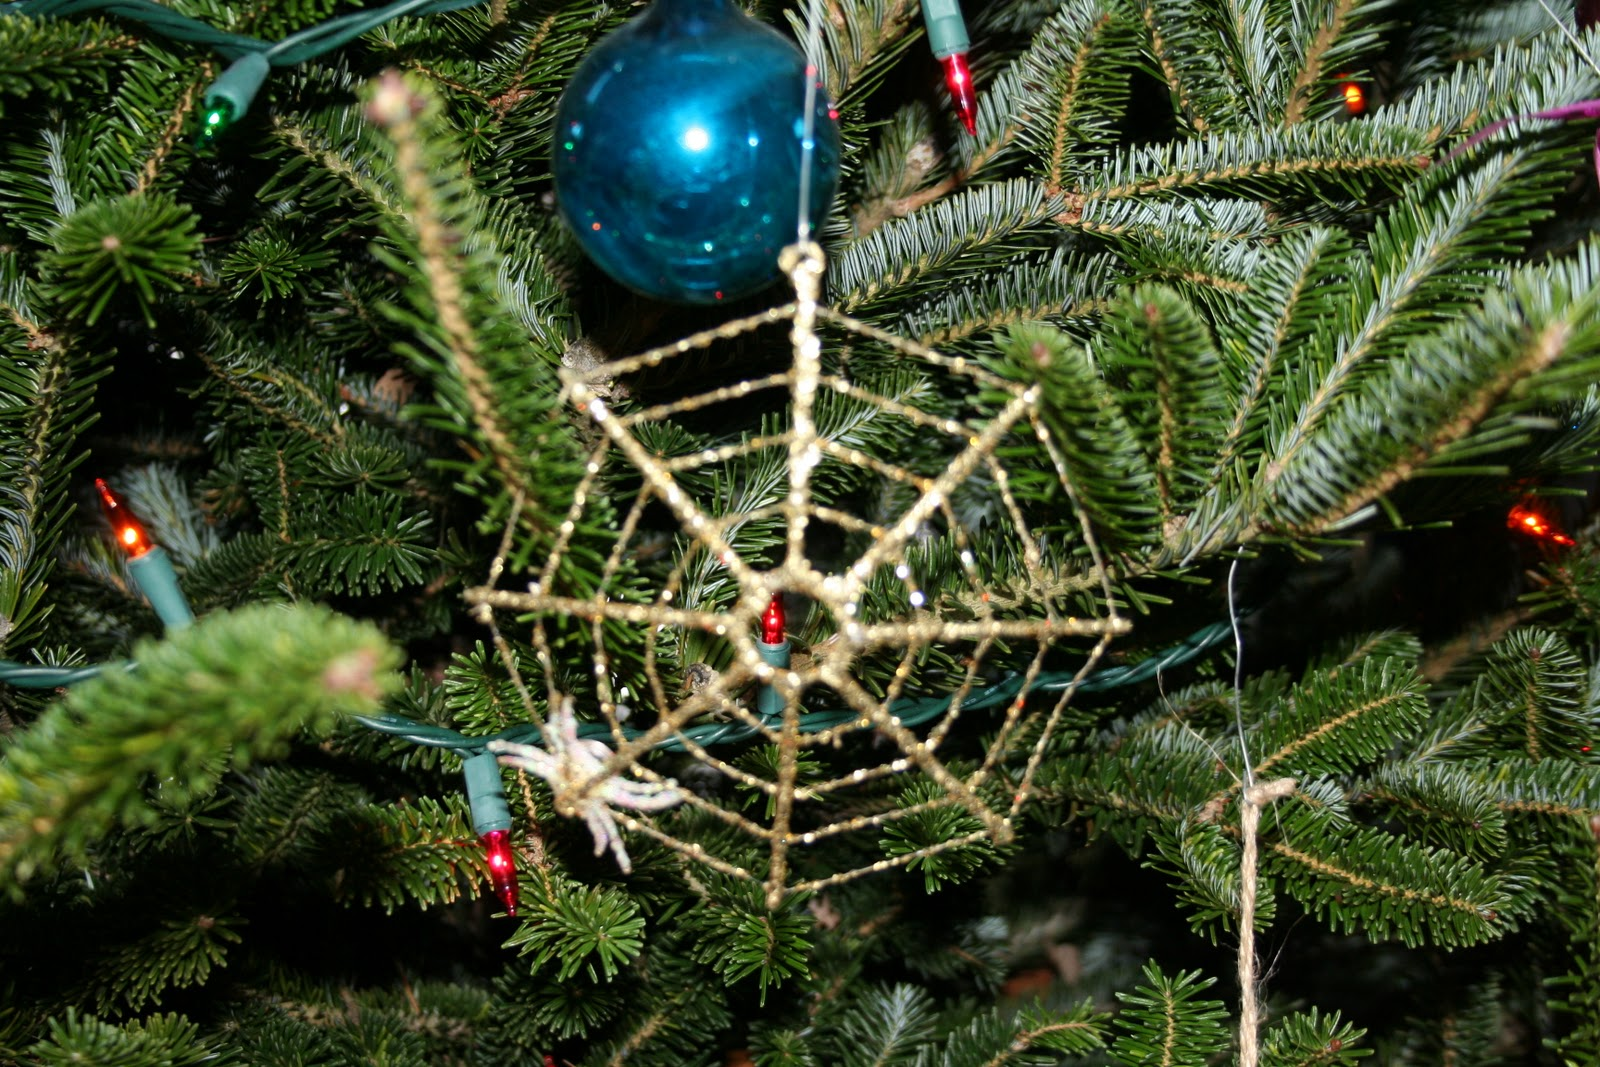 Spider on Ukrainian Xmas Tree